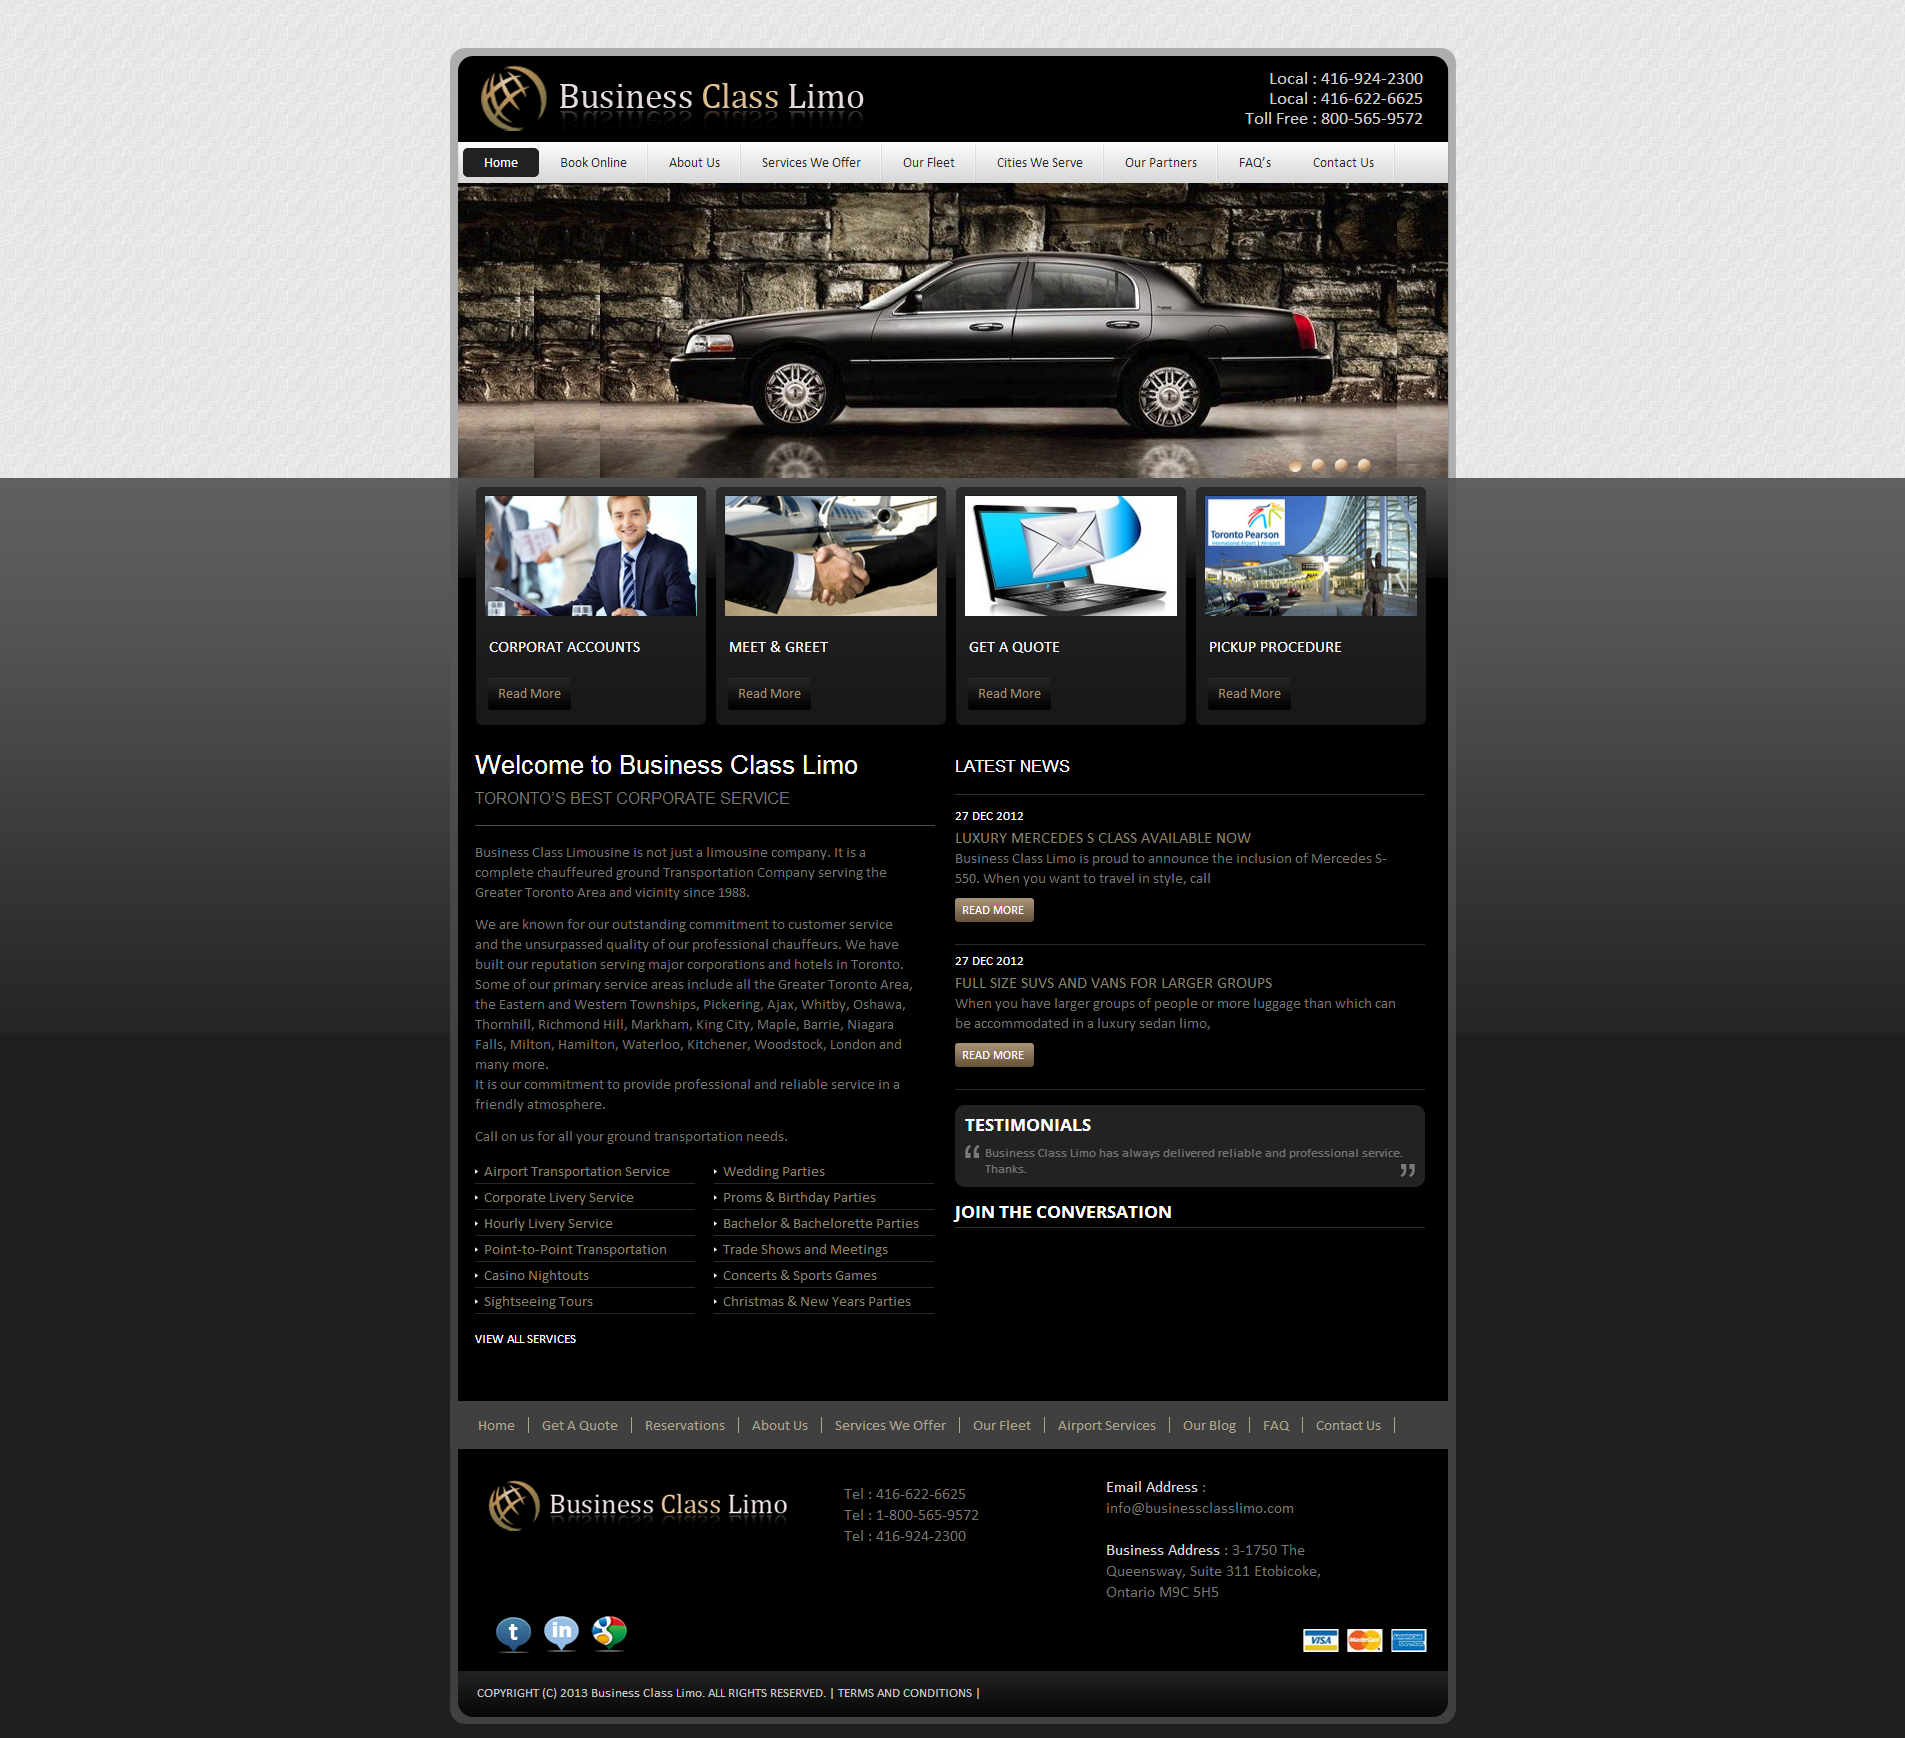 Creative and Professional Web design for Business Class Limo Company in Toronto by Adaptive Media